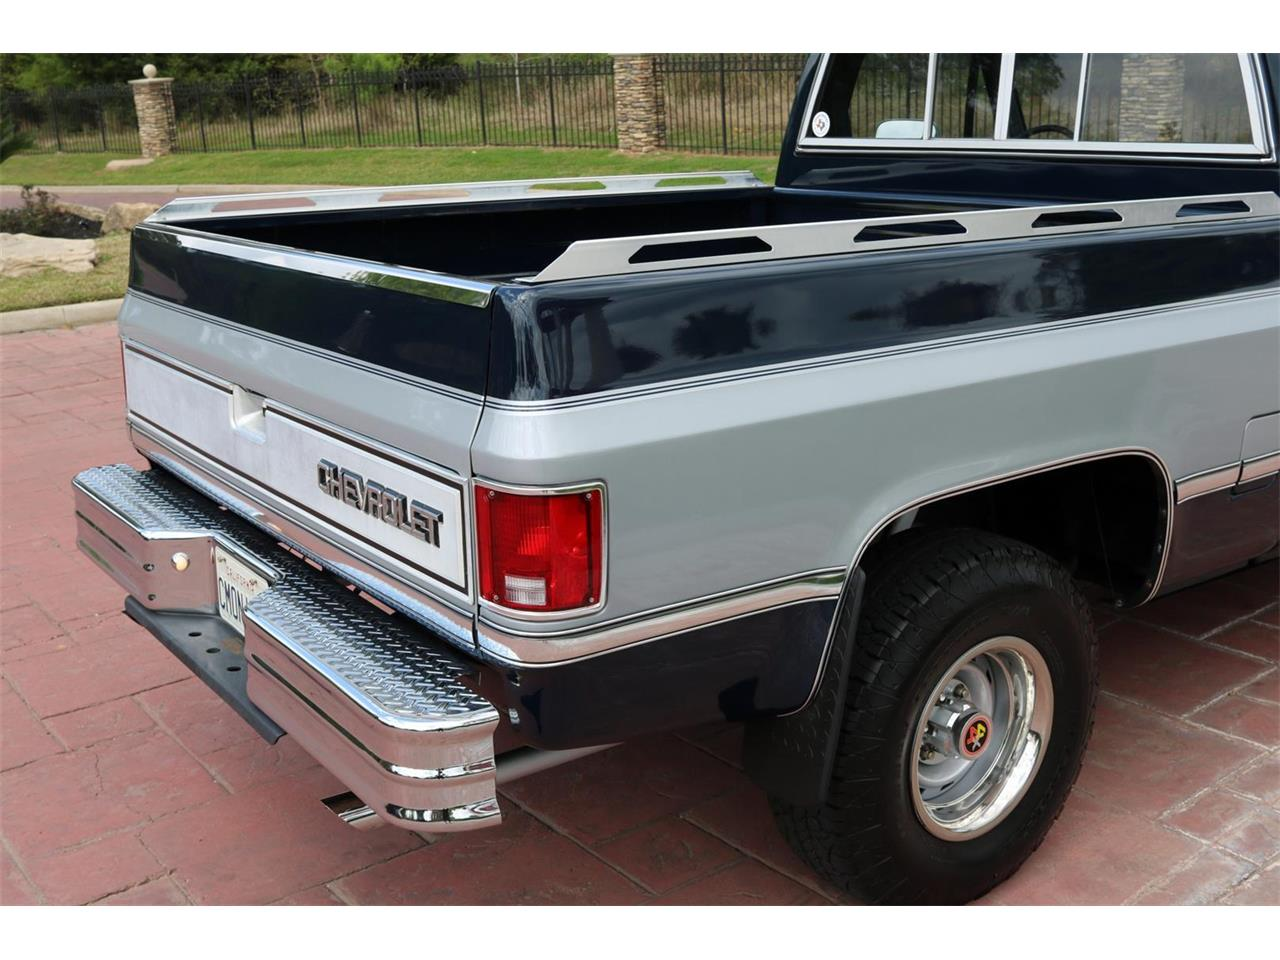 Large Picture of '83 Chevrolet K-10 - $21,900.00 - PQPT